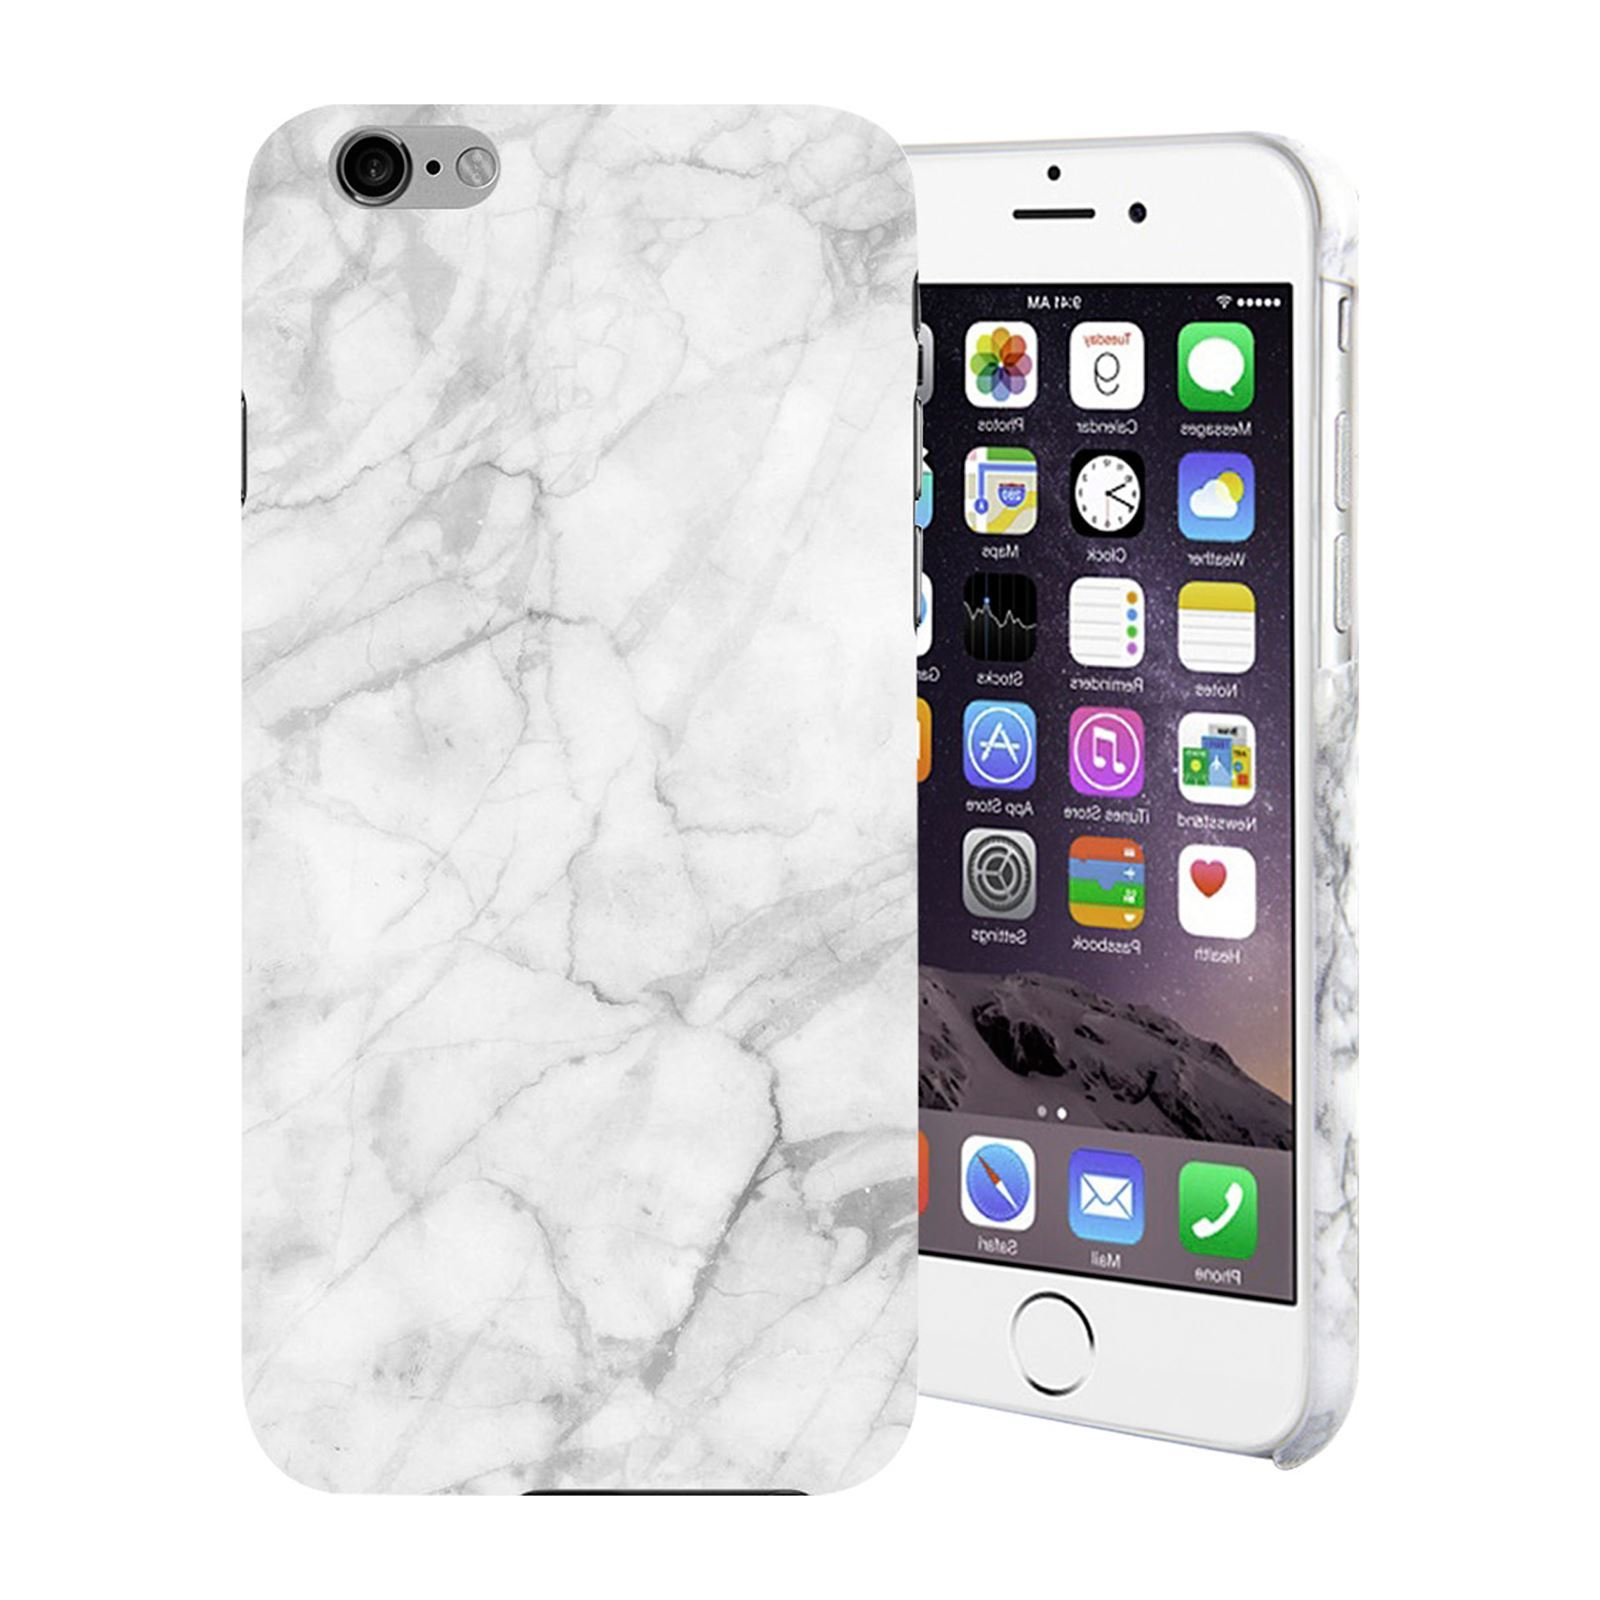 geeko coque de protection effet marbre iphone 6 blanc brandalley. Black Bedroom Furniture Sets. Home Design Ideas